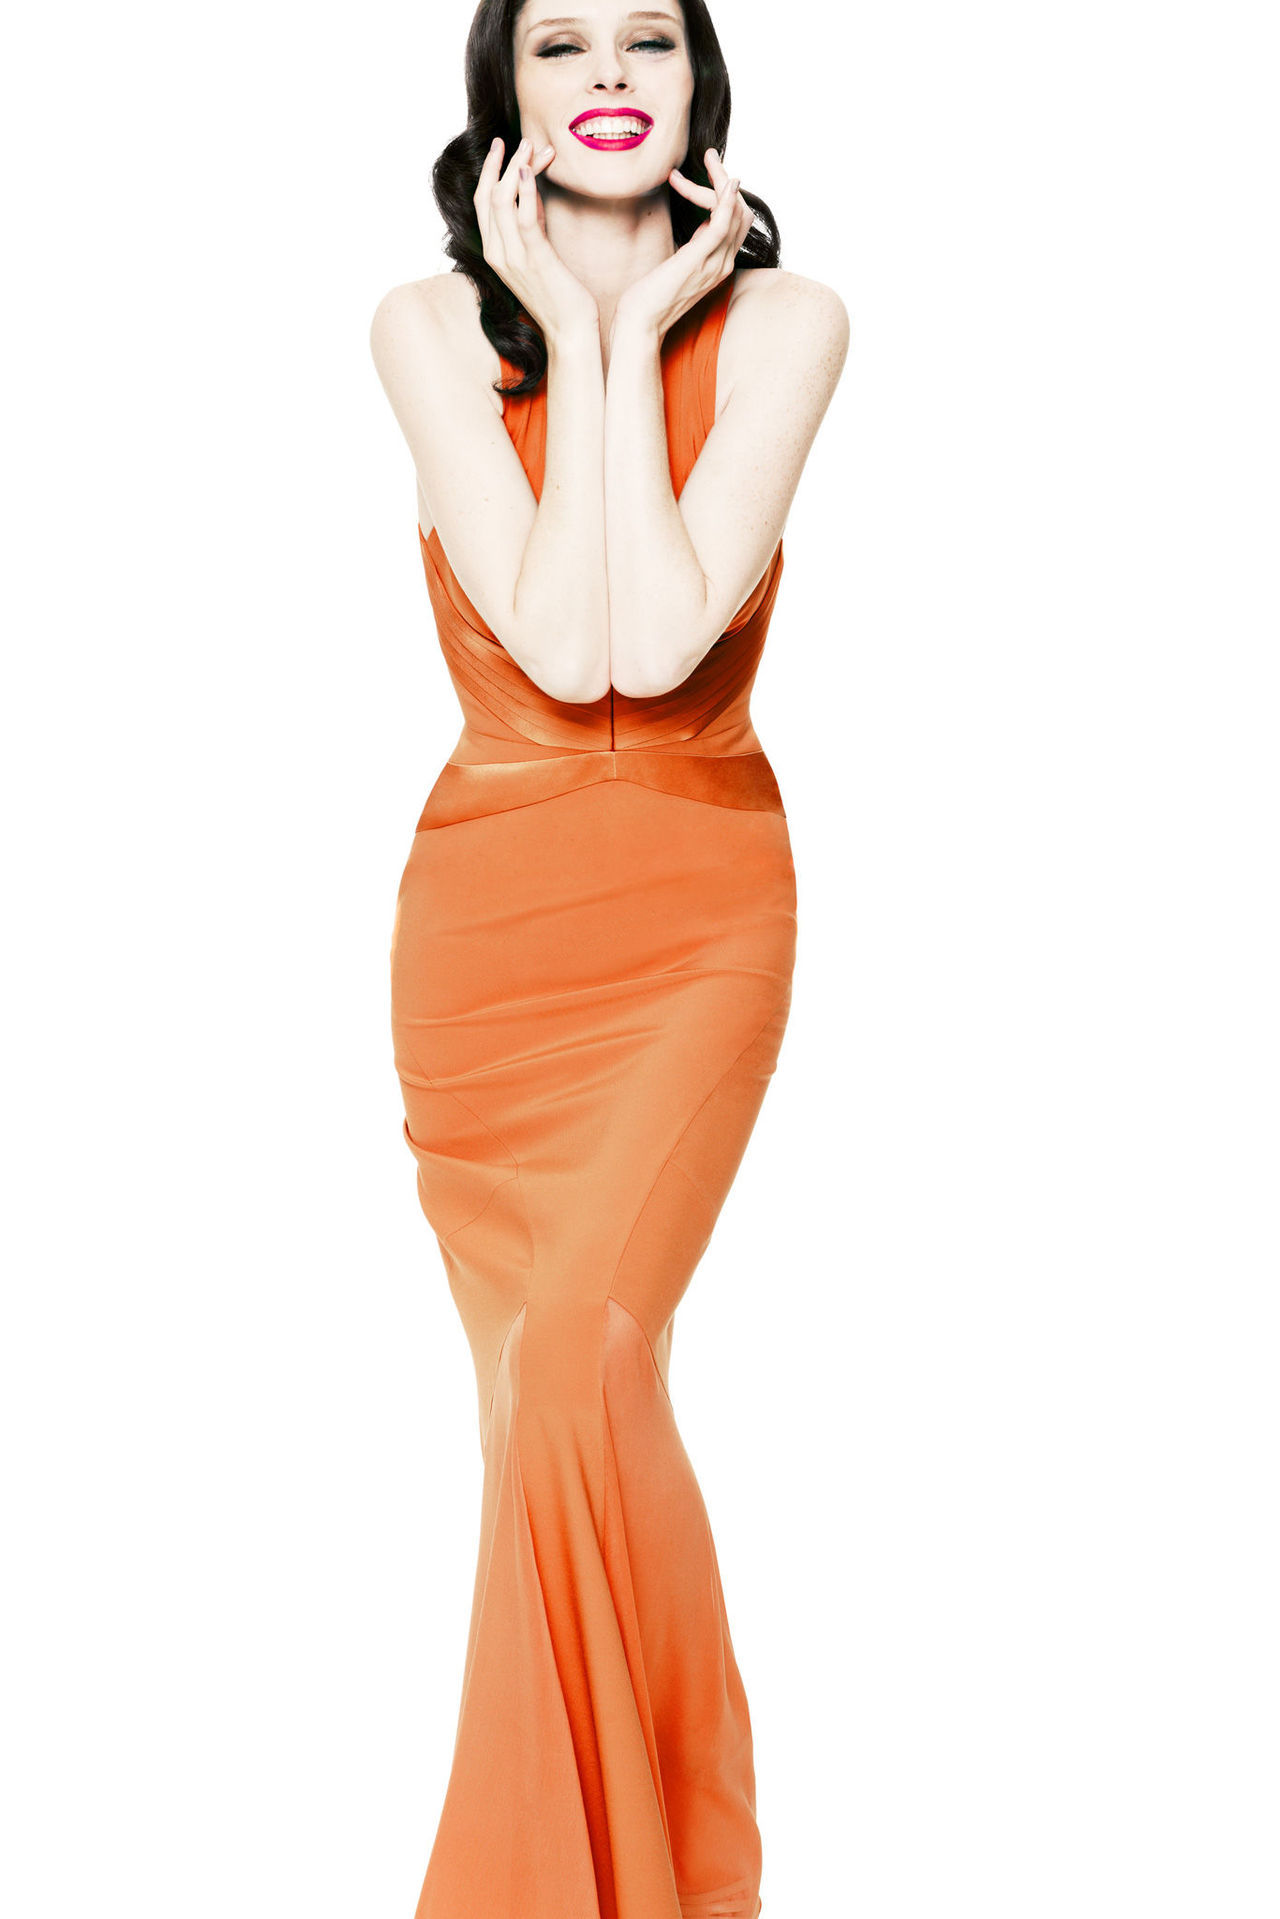 Coco Rocha for Z Spoke by Zac Posen, spring 2013